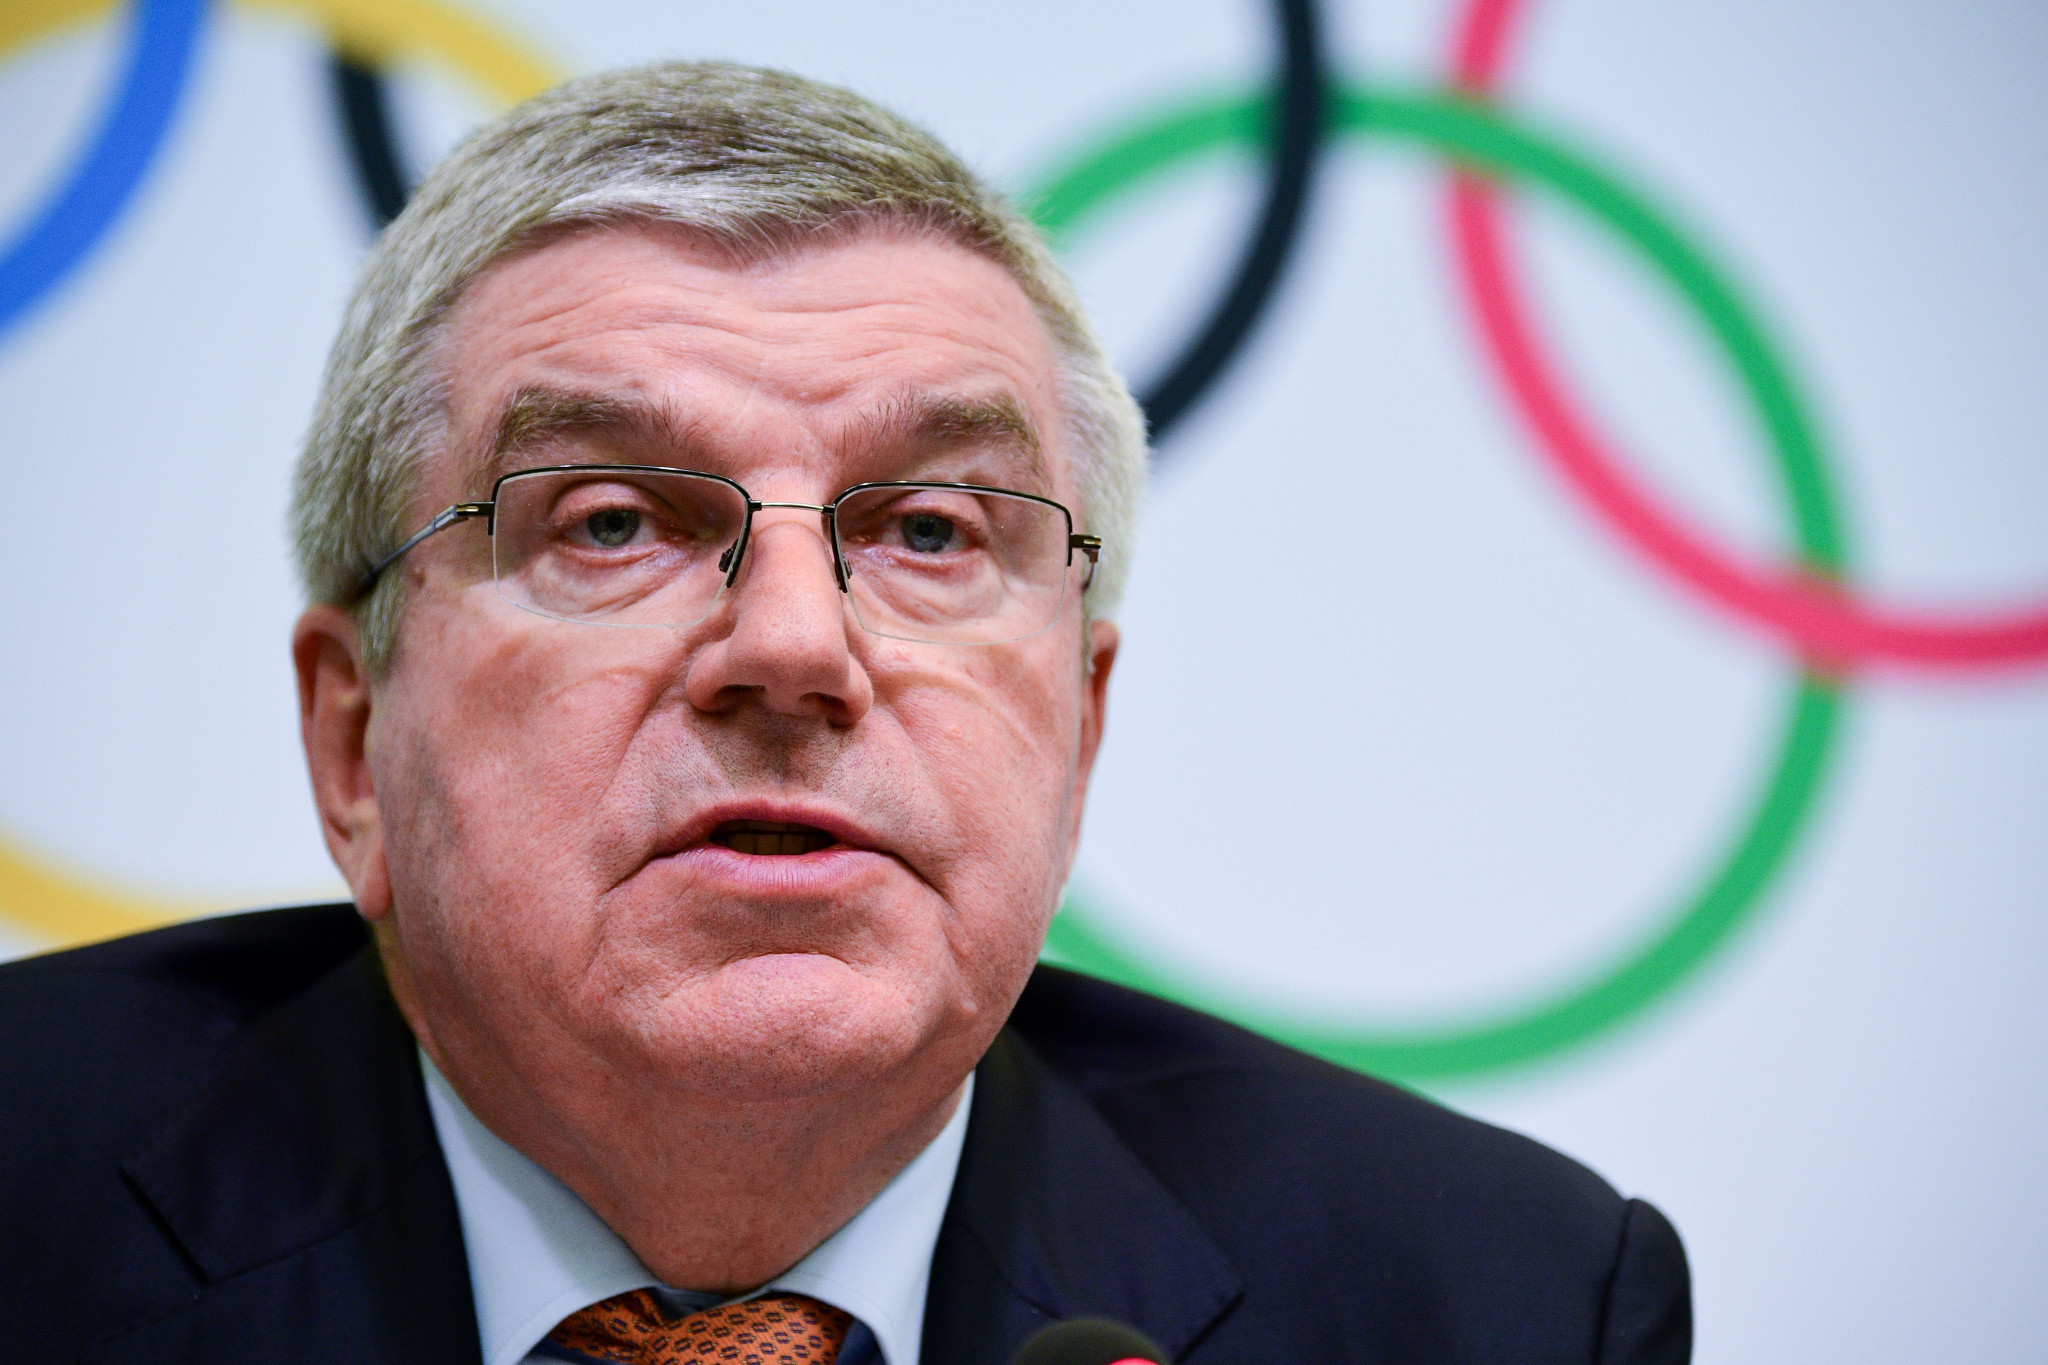 IOC President Thomas Bach has reassured athletes that there will be a boxing tournament in some form at Tokyo 2020 ©Getty Images